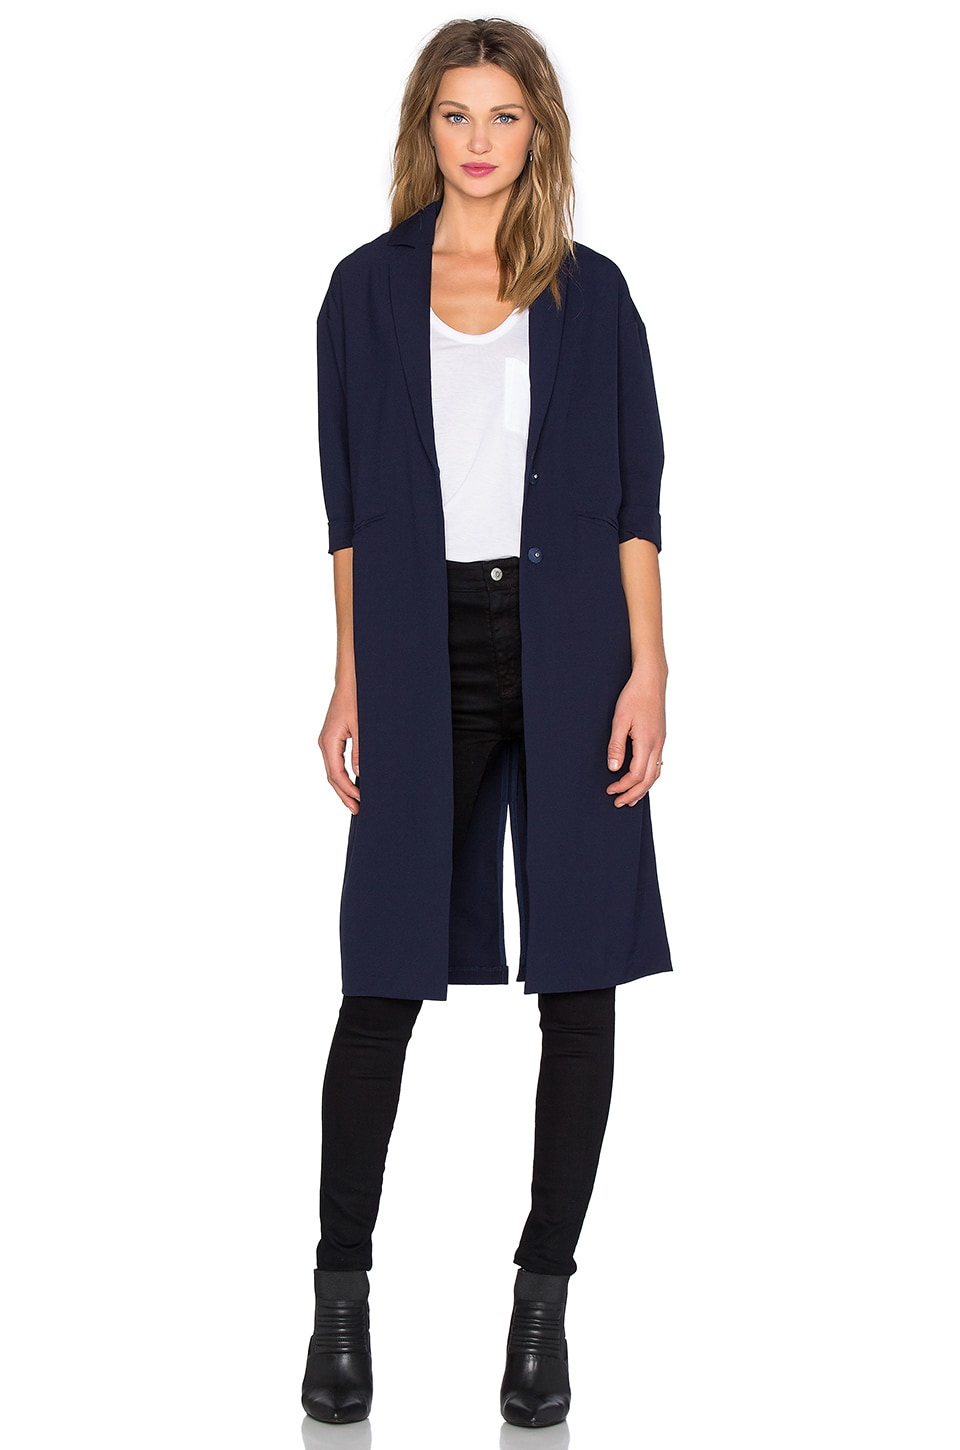 BLQ BASIQ Duster Coat in Navy